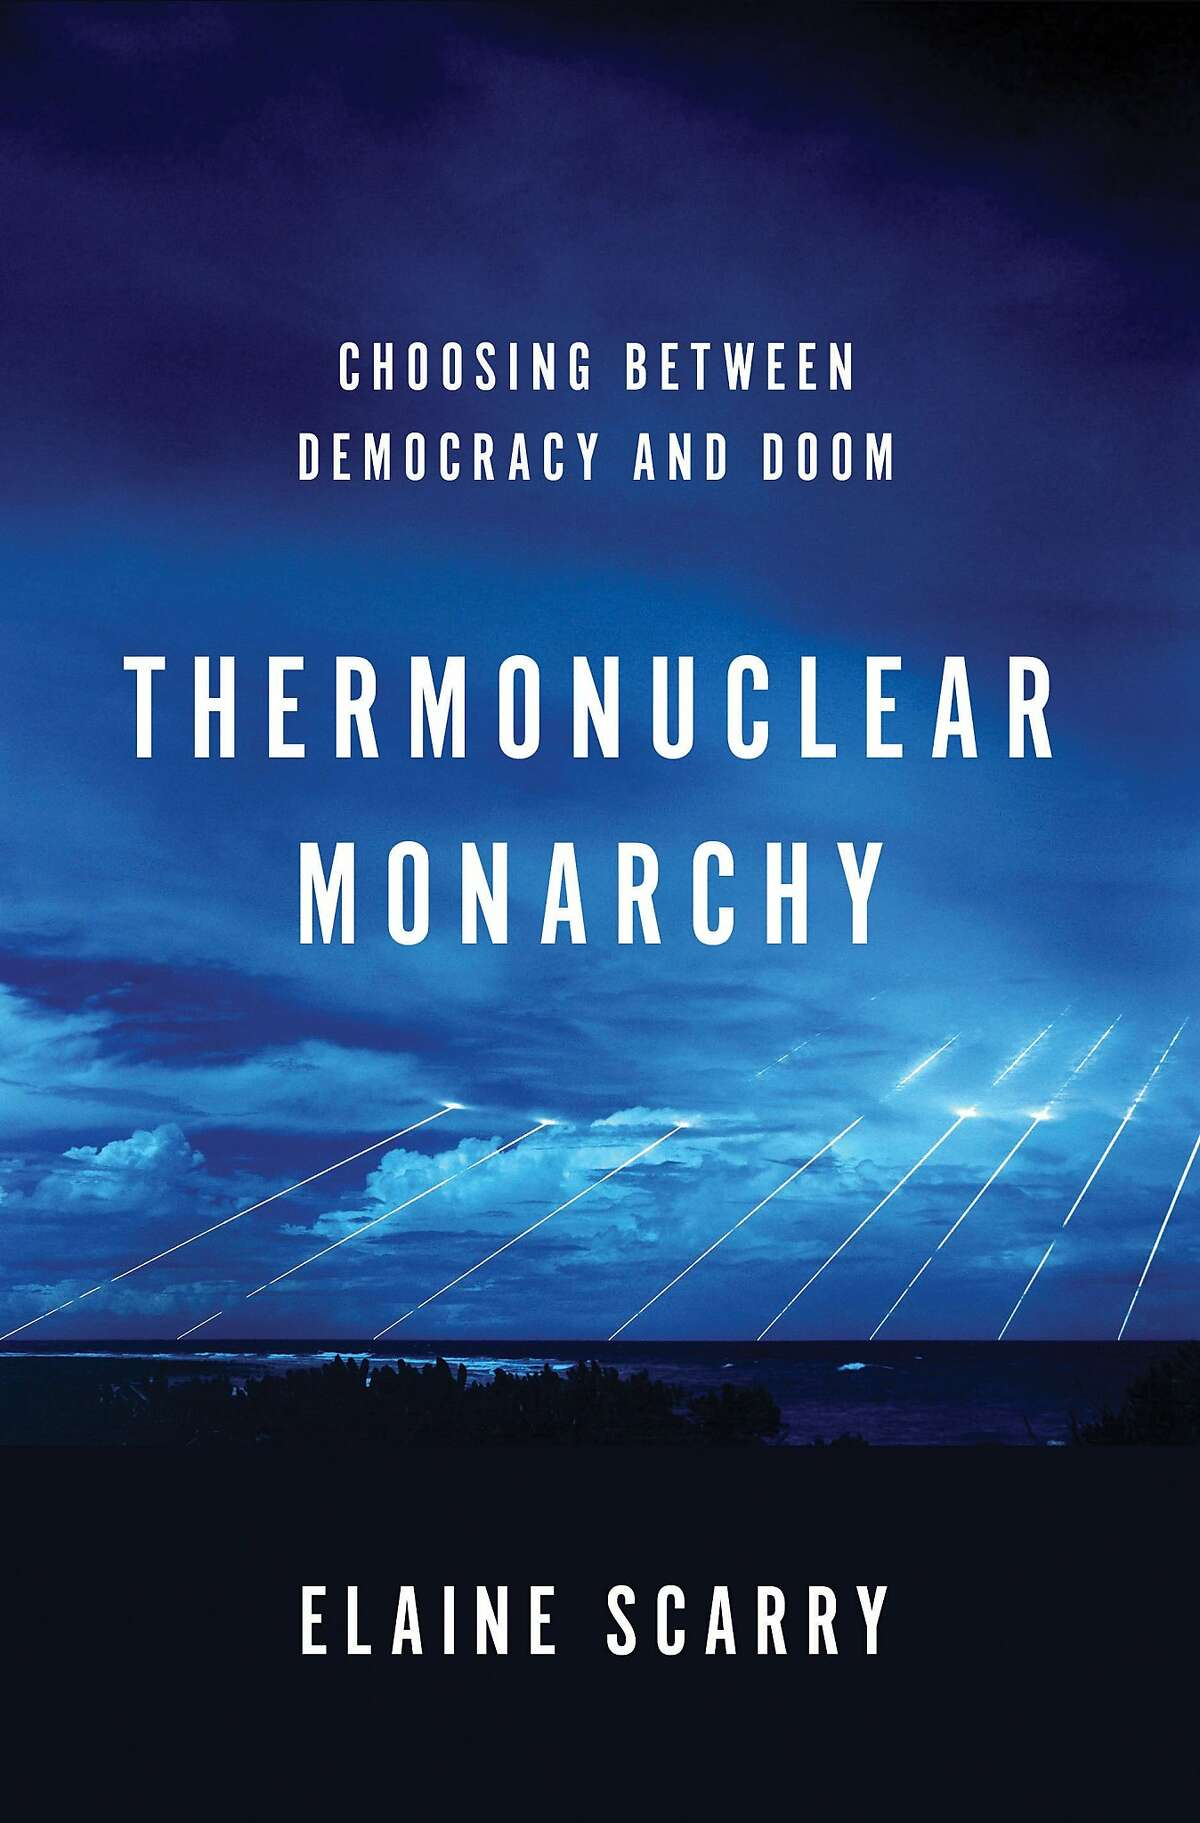 Thermonuclear Monarchy: Choosing Between Democracy and Doom, by Elaine Scarry